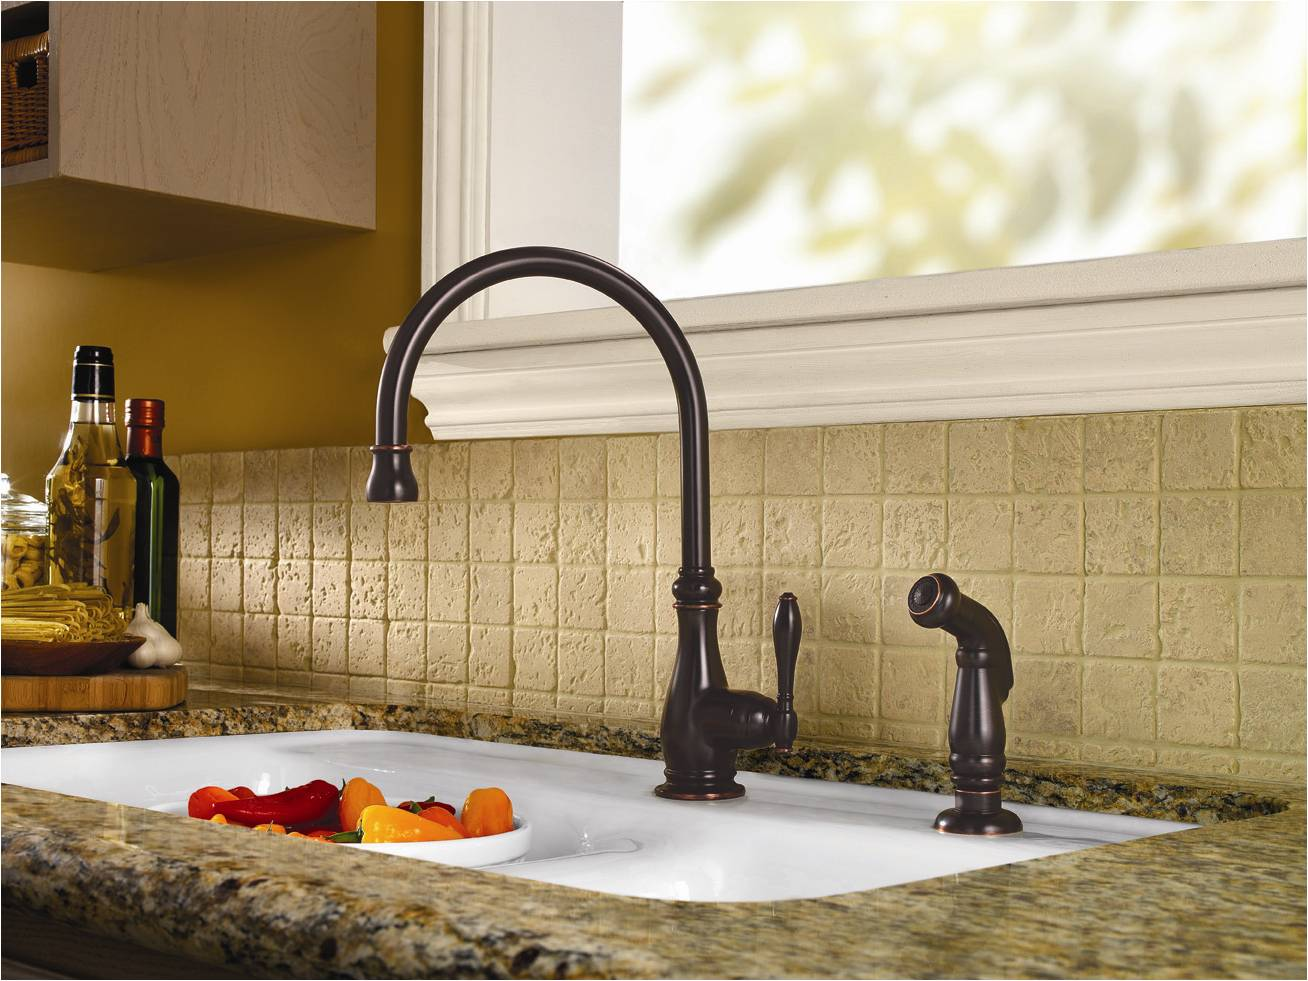 prweb price pfister kitchen faucet The Alina Kitchen Faucet s traditional style features a spout height of 14 inches with 8 5 inches of spout clearance for larger pots and bowls